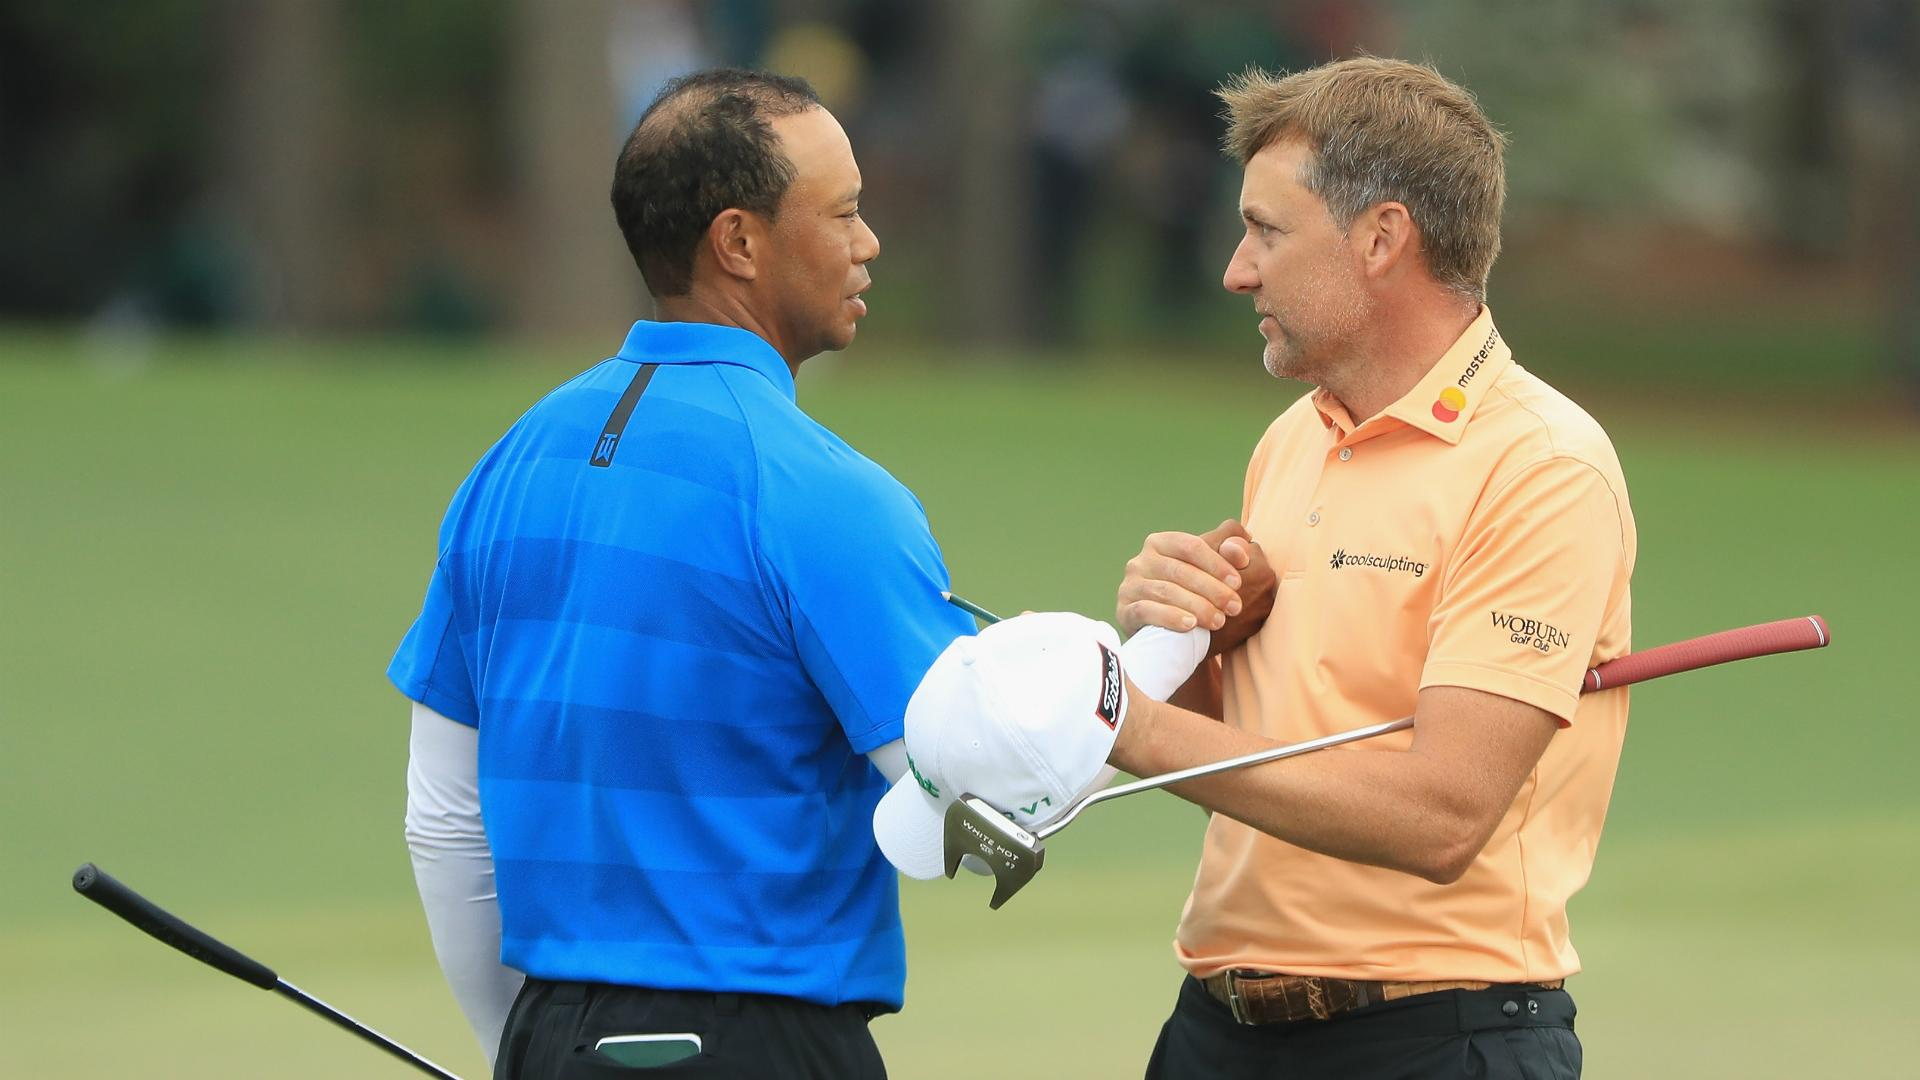 Woods winning 'incredibly special for golf', says Poulter